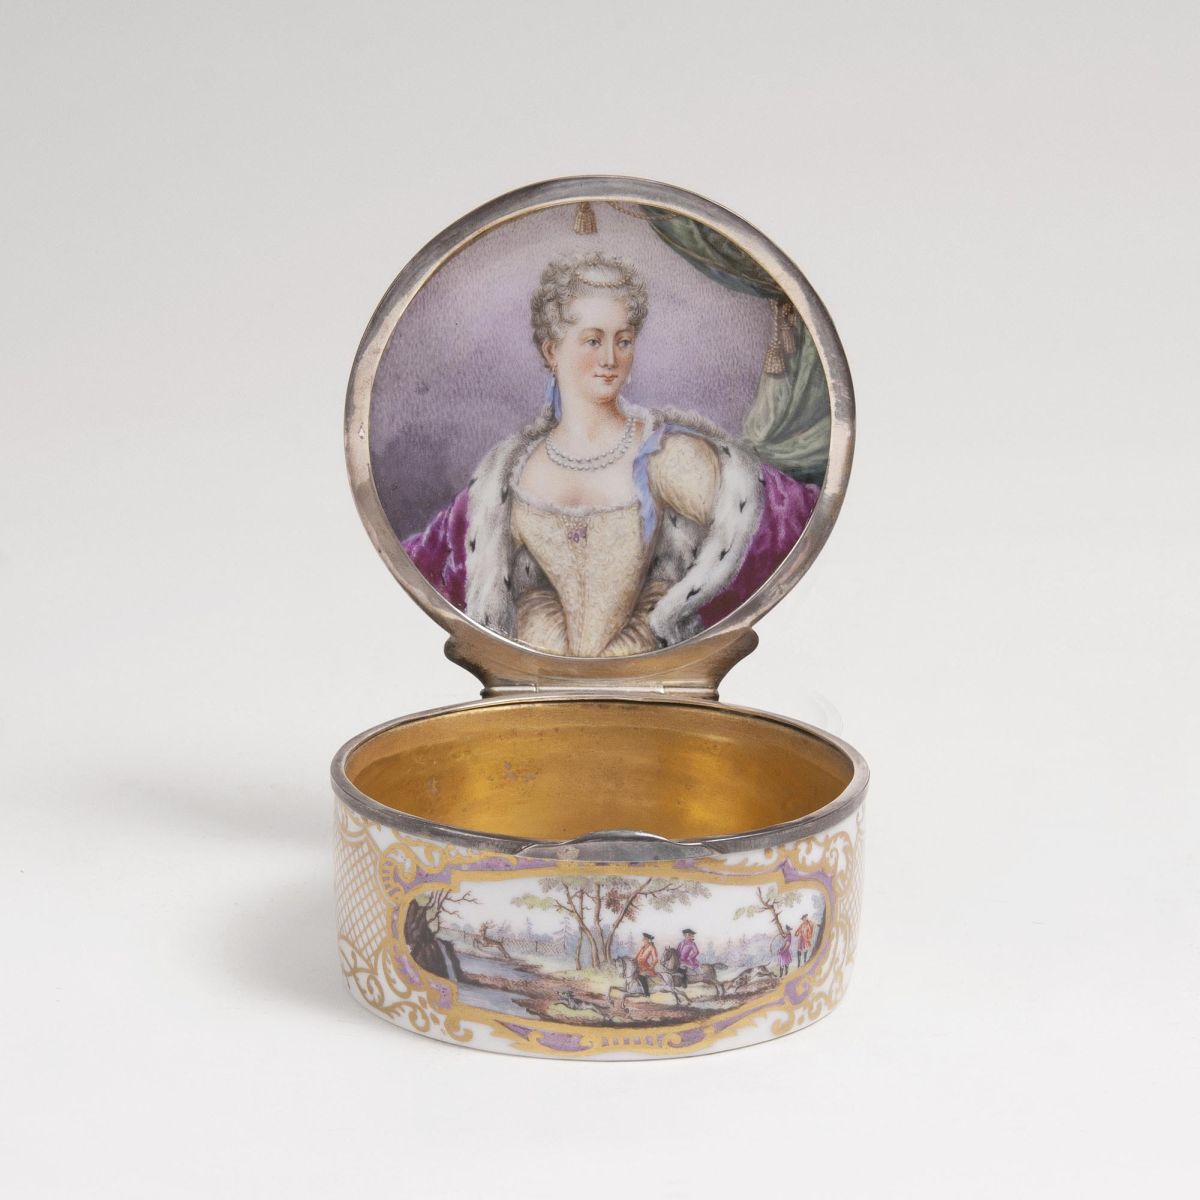 A splendid Tabatière with Portrait of Archduchess Maria Josepha of Austria